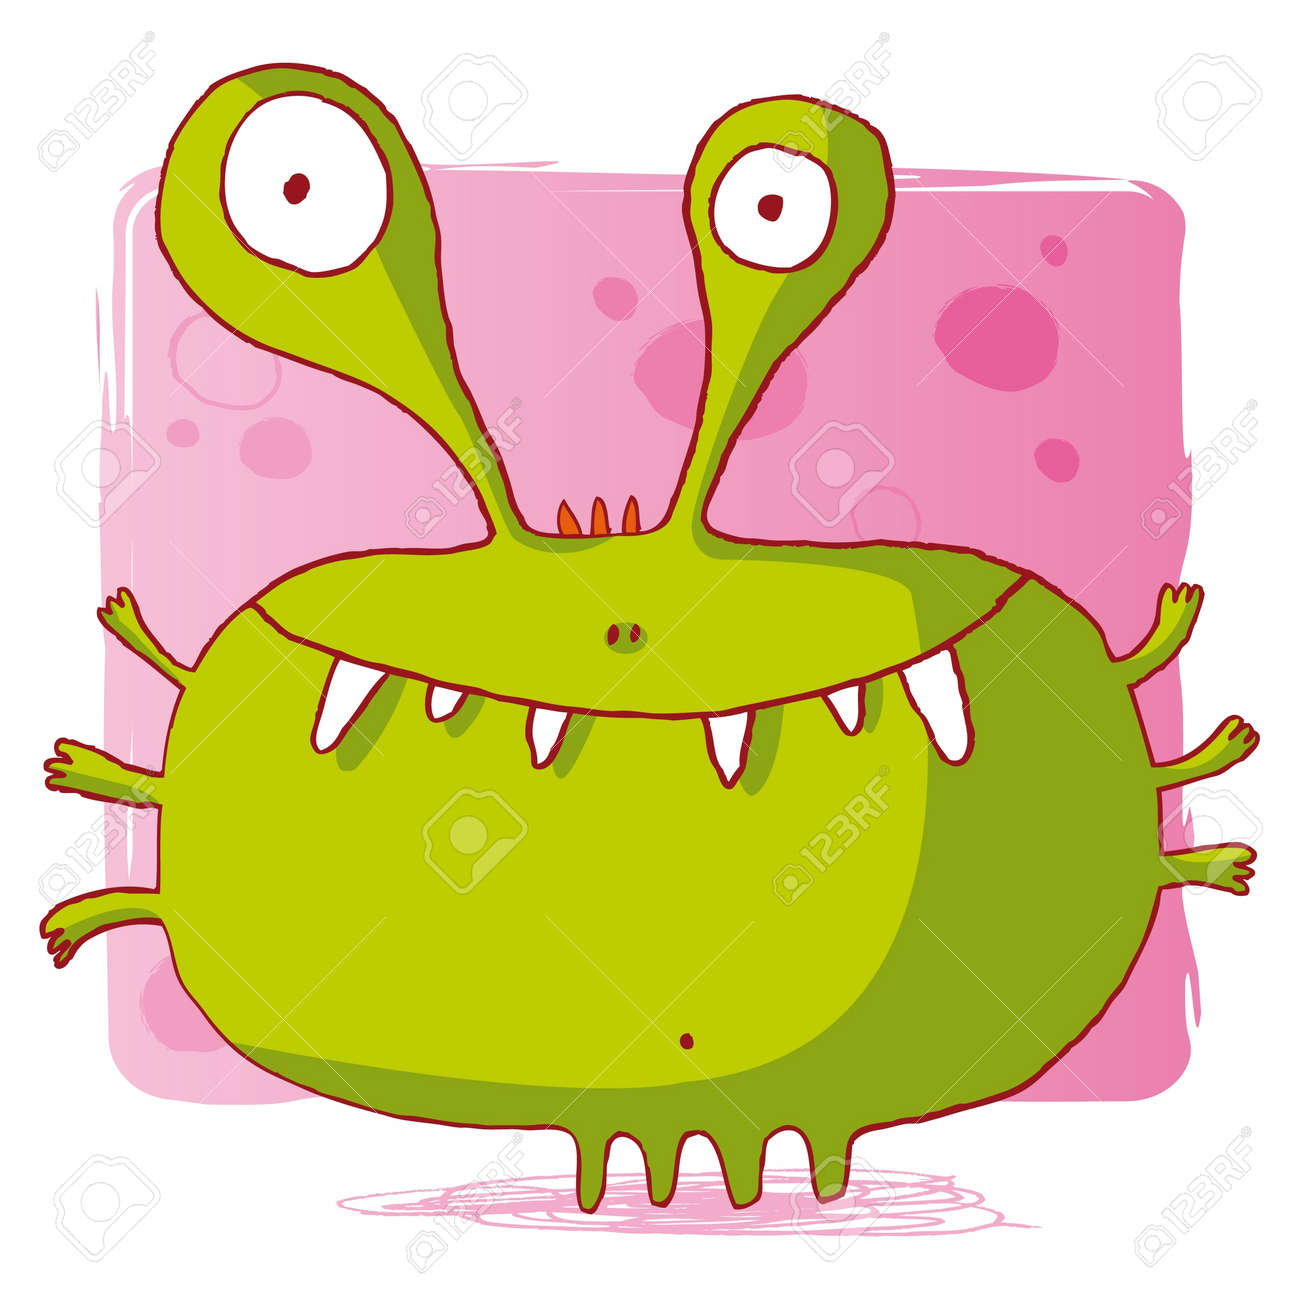 funny bacteria / funny monster / funny computer virus Stock Vector - 10470557